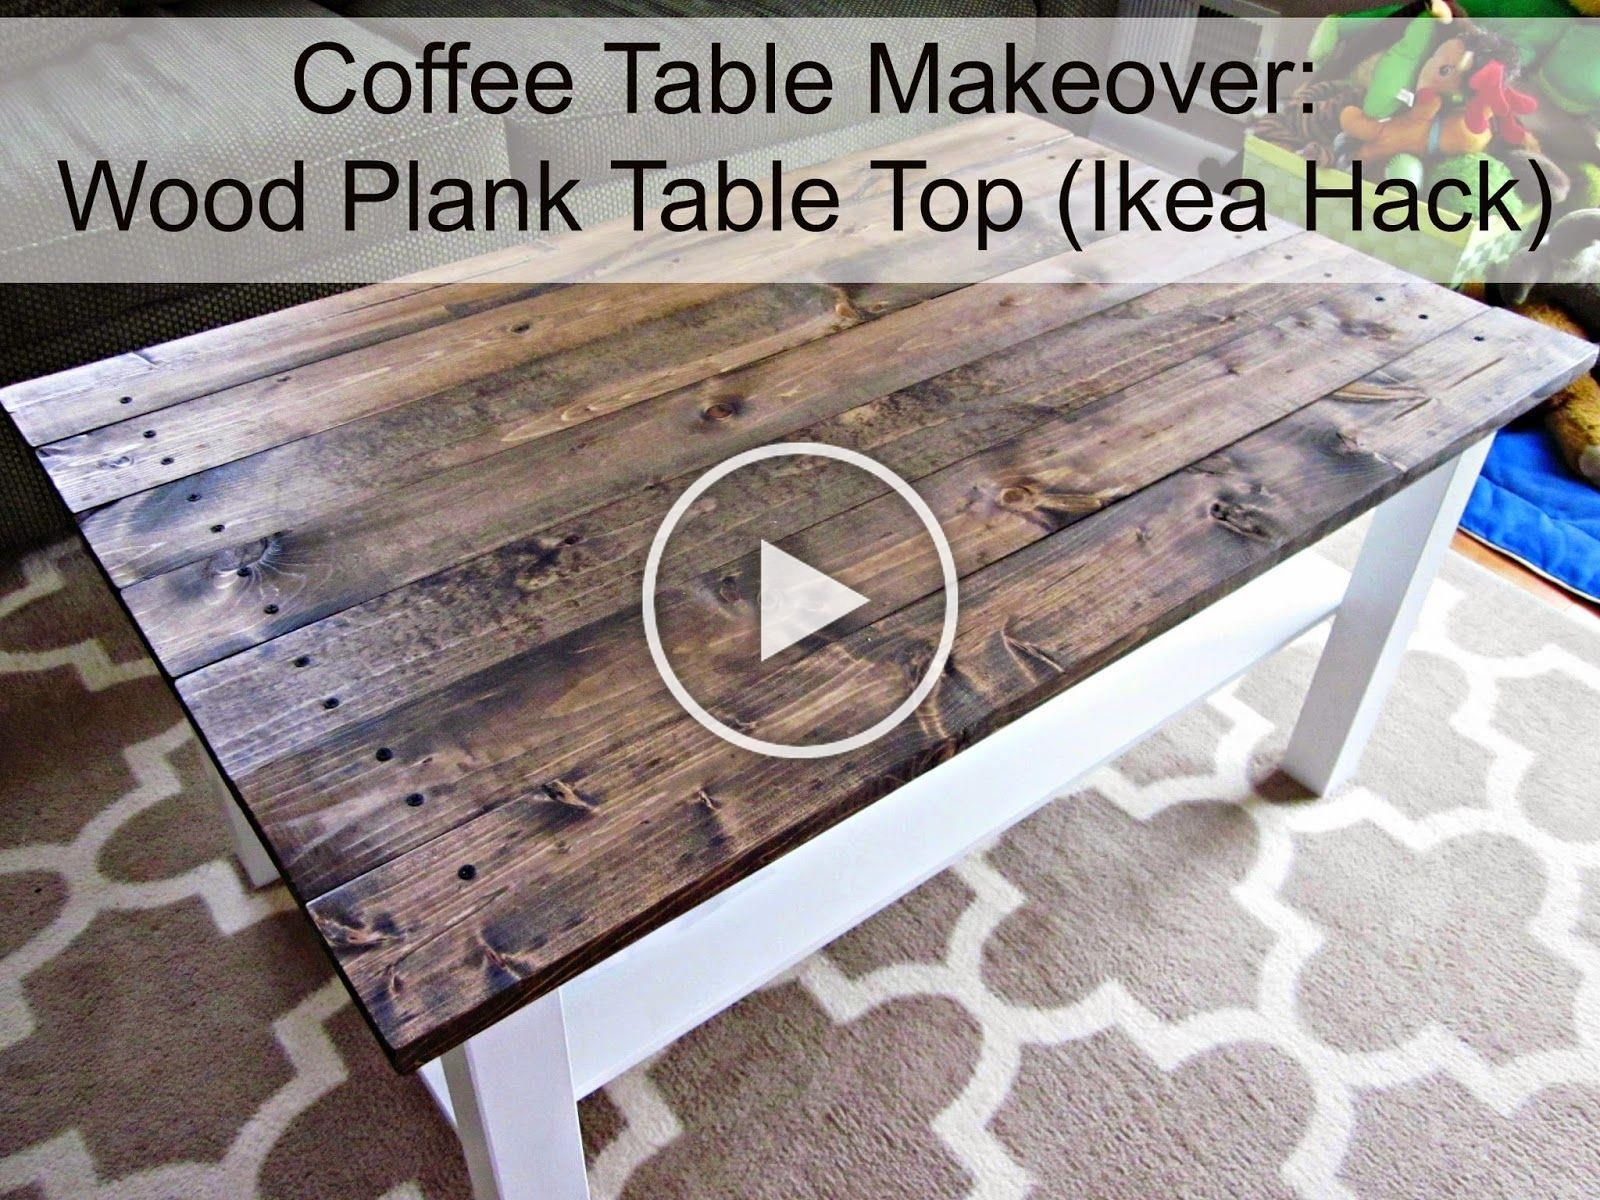 This Crazy Thing Called Life Coffee Table Makeover Wood Plank Table Top Ikea Hack Diy Table Makeover Coffee Table Wood Coffee Table Makeover [ 1200 x 1600 Pixel ]